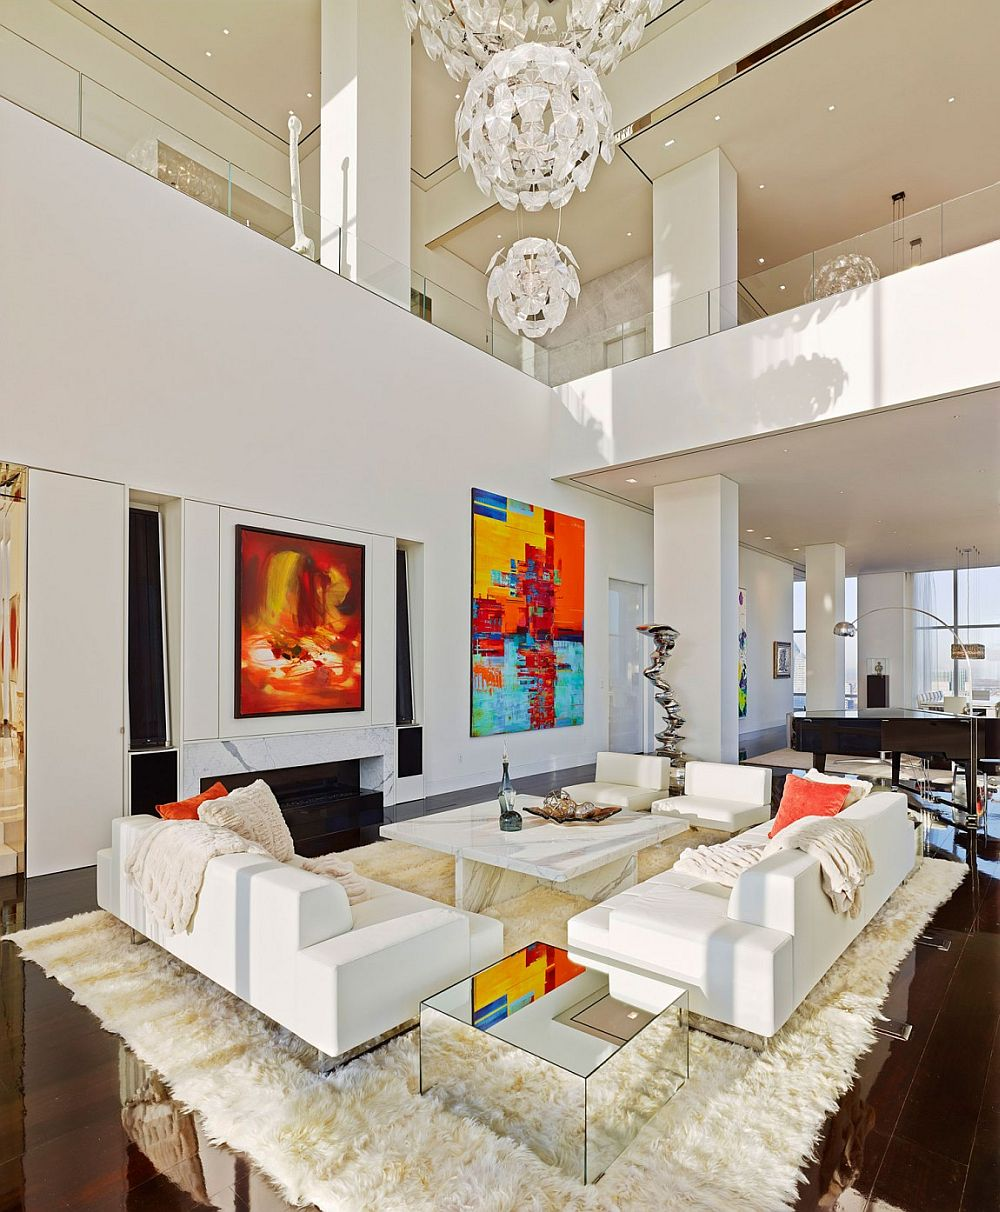 1 Bedroom Apartment In New York: Breathtaking New York City Penthouse Leaves You Awestruck